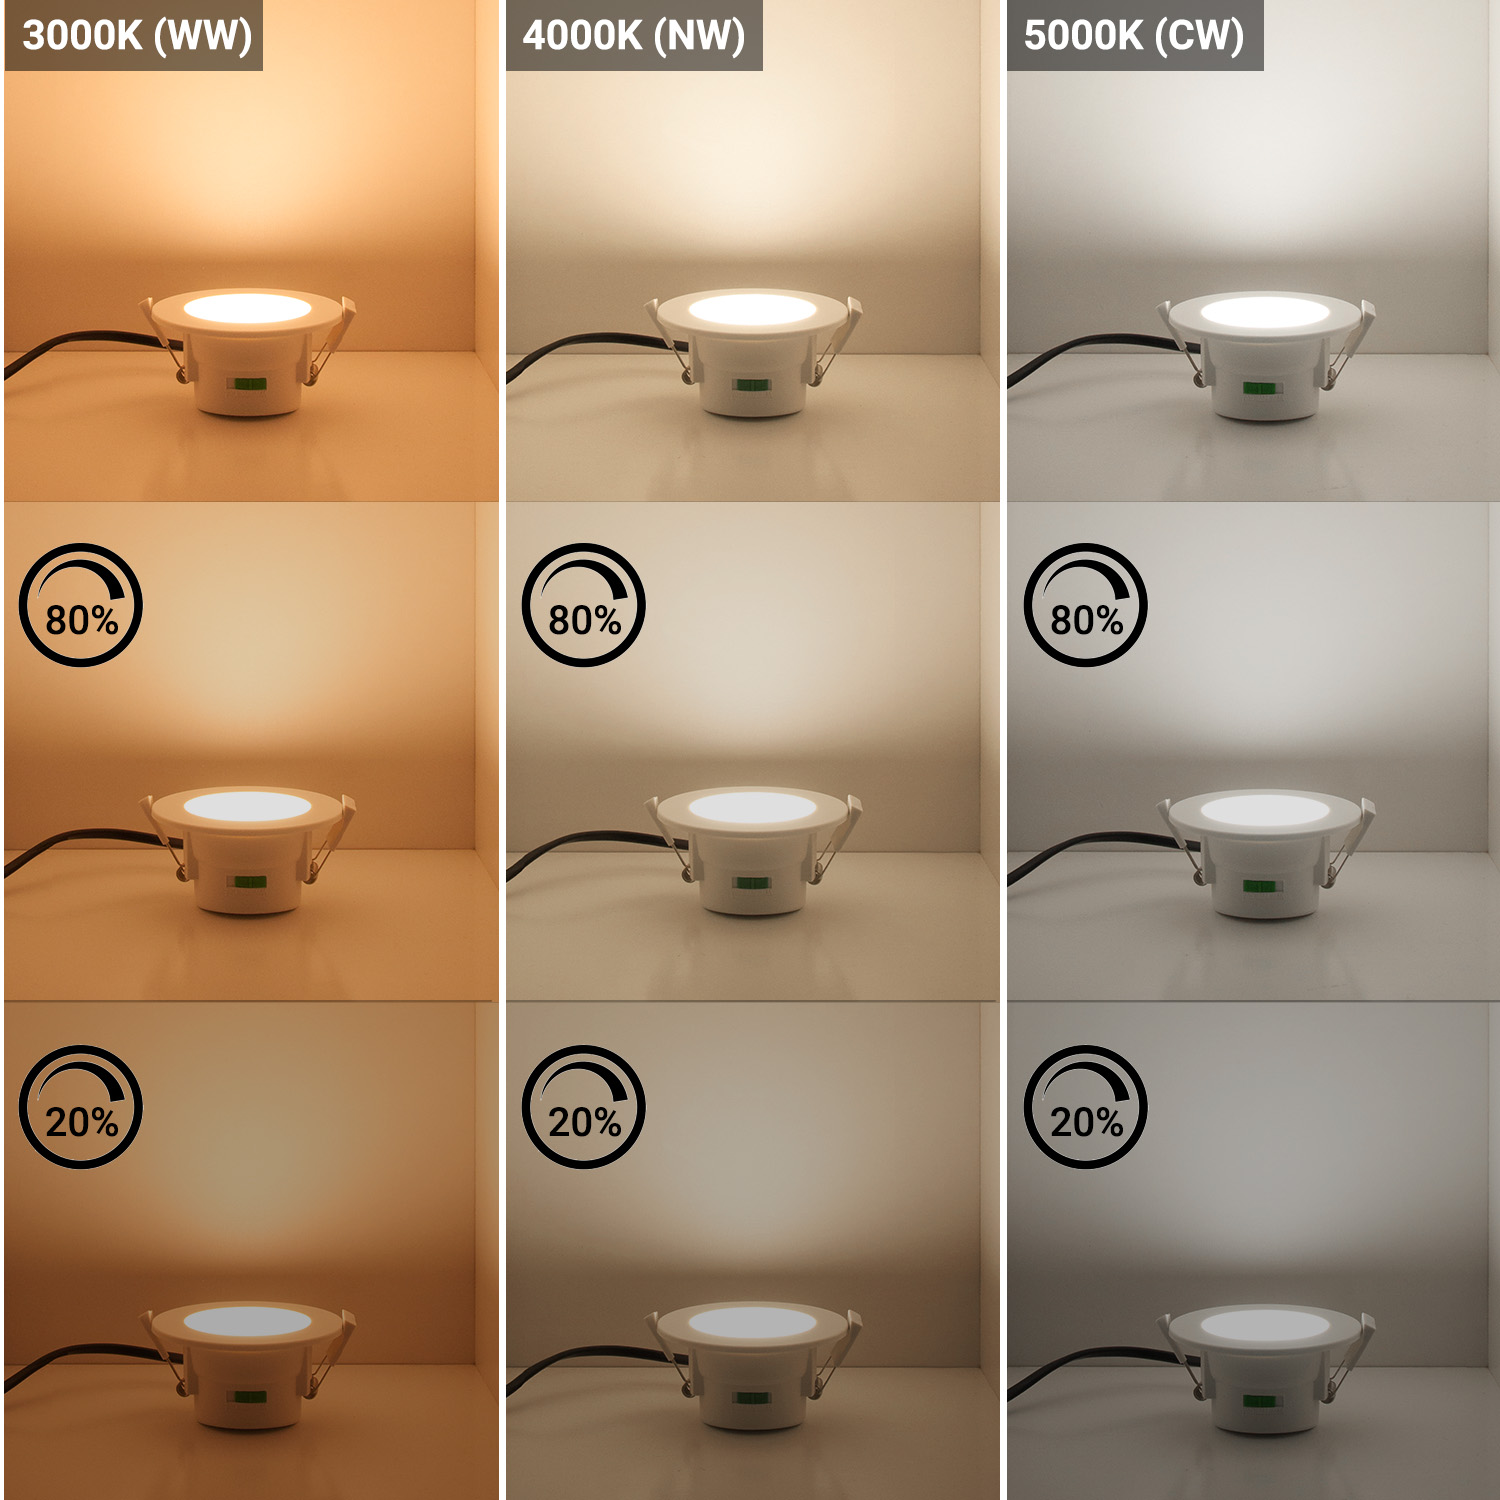 What Difference about Color Temperature 3000K VS 4000K VS 5000K?